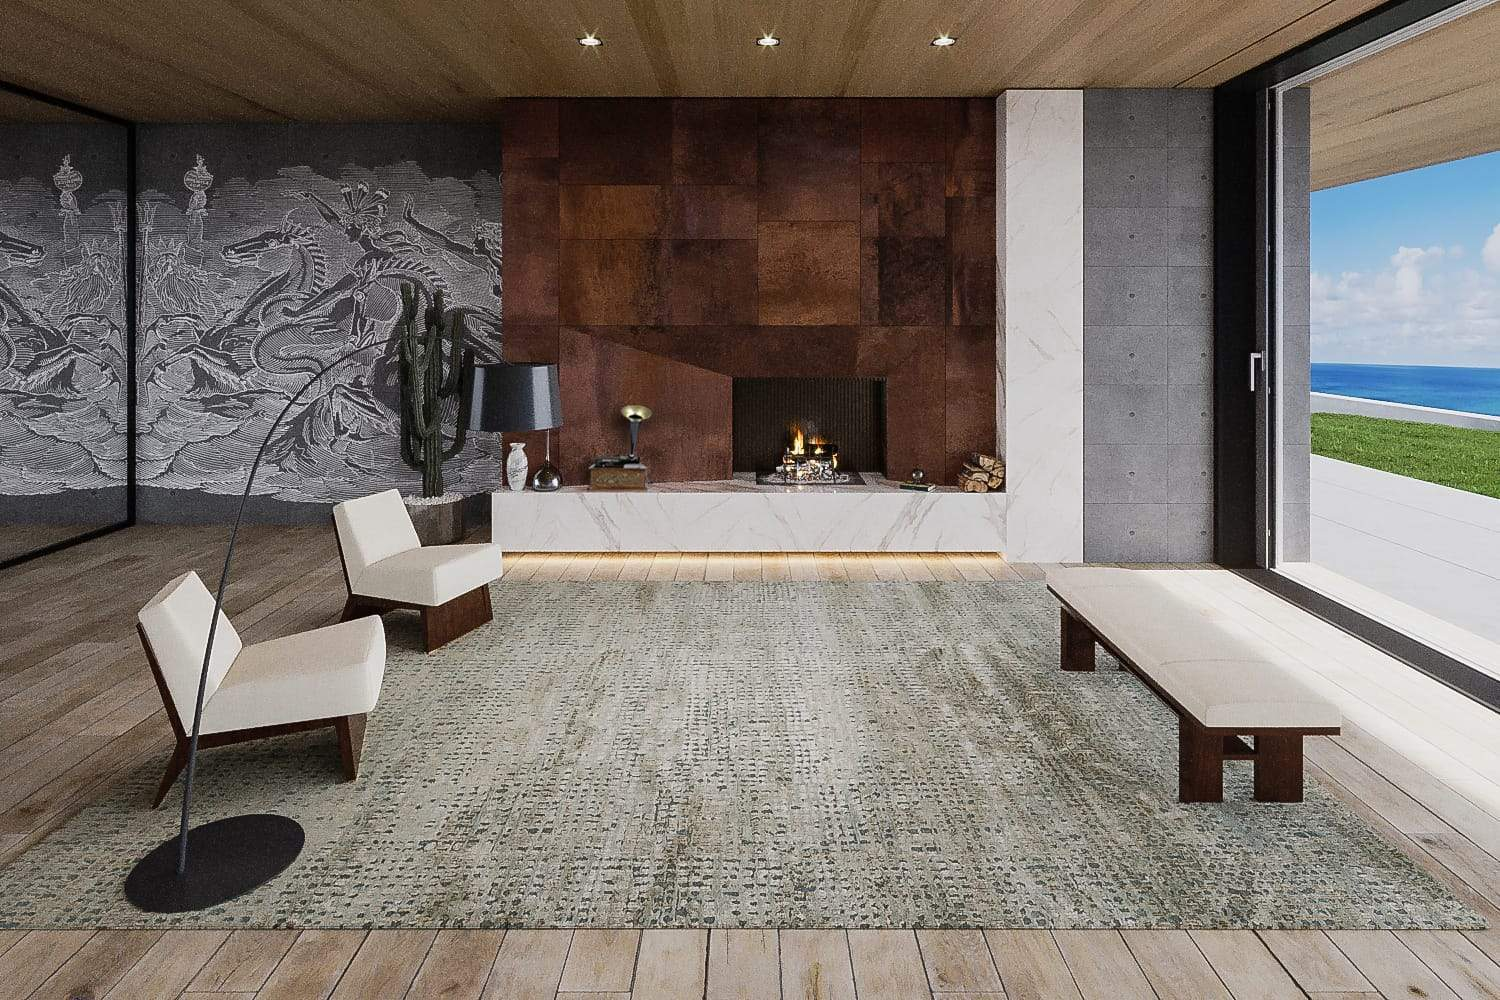 Installation image of Chiapas Ice Taupe, a hand knotted rug designed by Barbara Barry for Tufenkian room-image